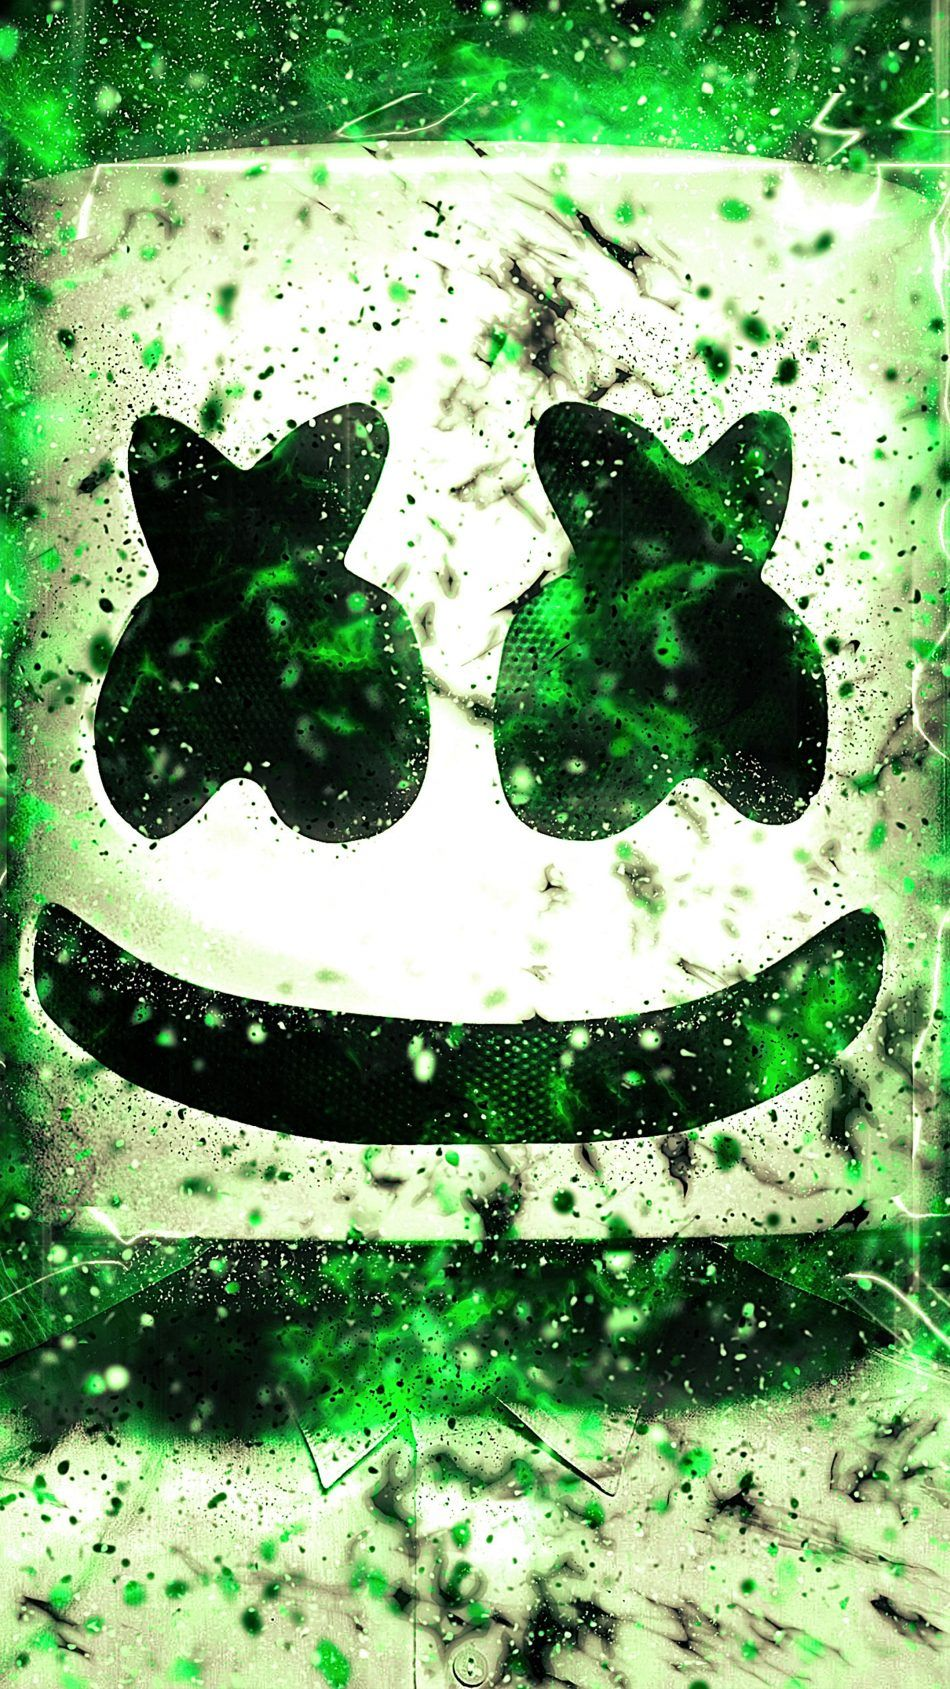 Marshmello Green Neon Artwork 4k Ultra Hd Mobile Wallpaper Marshmello Wallpapers Papeis De Parede Para Iphone Papeis De Parede Para Download